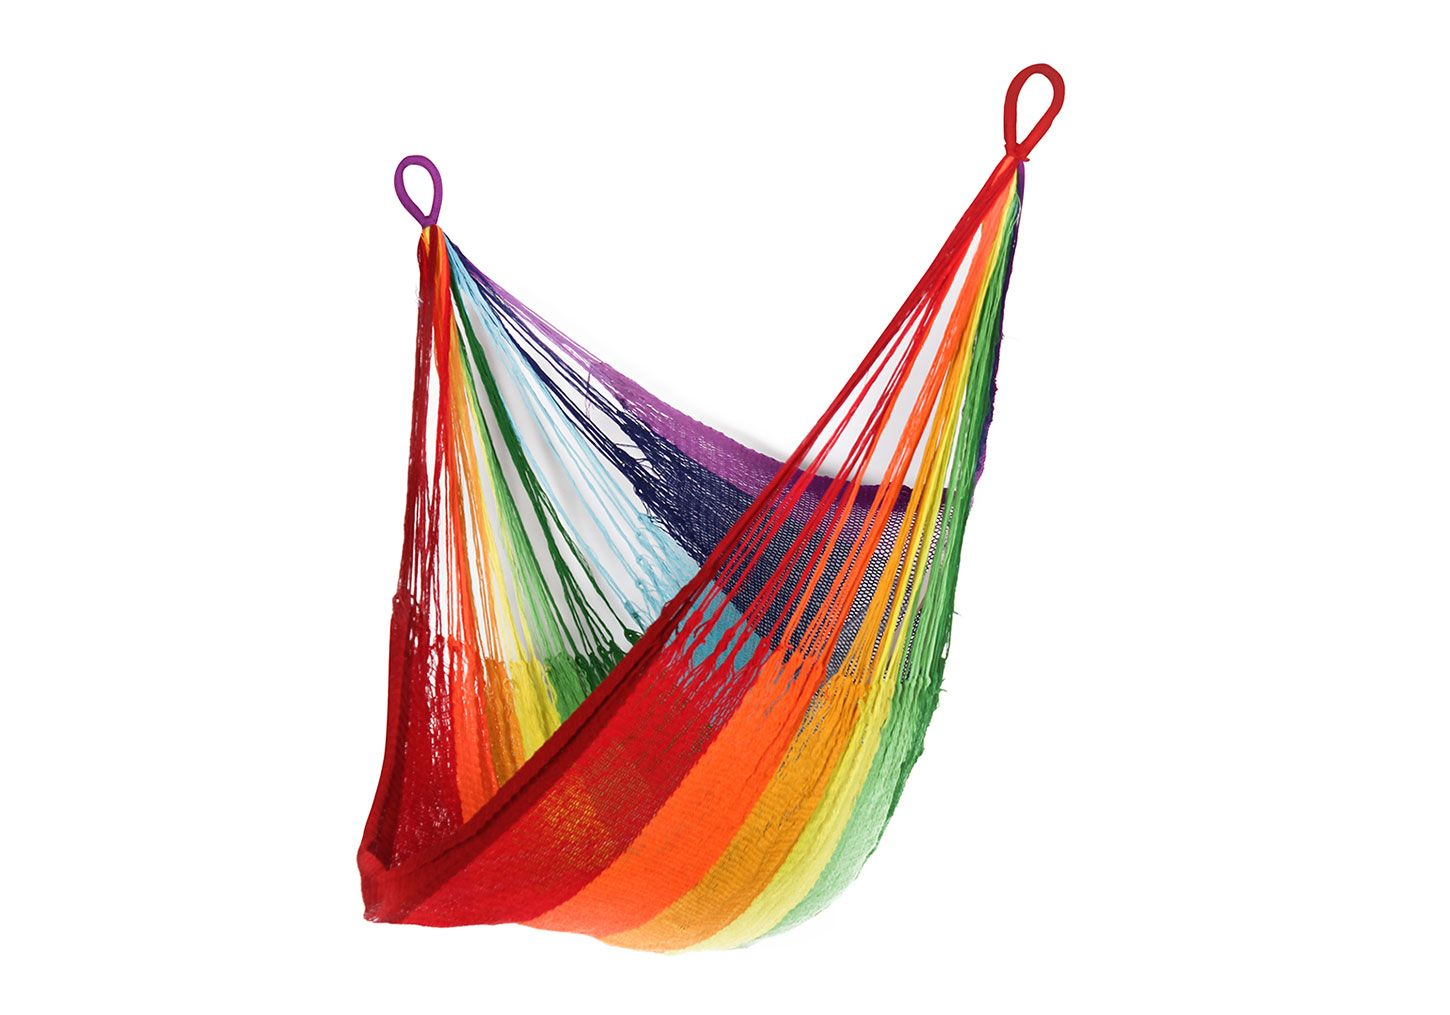 This hammock is handwoven by artisans in rural thailand and